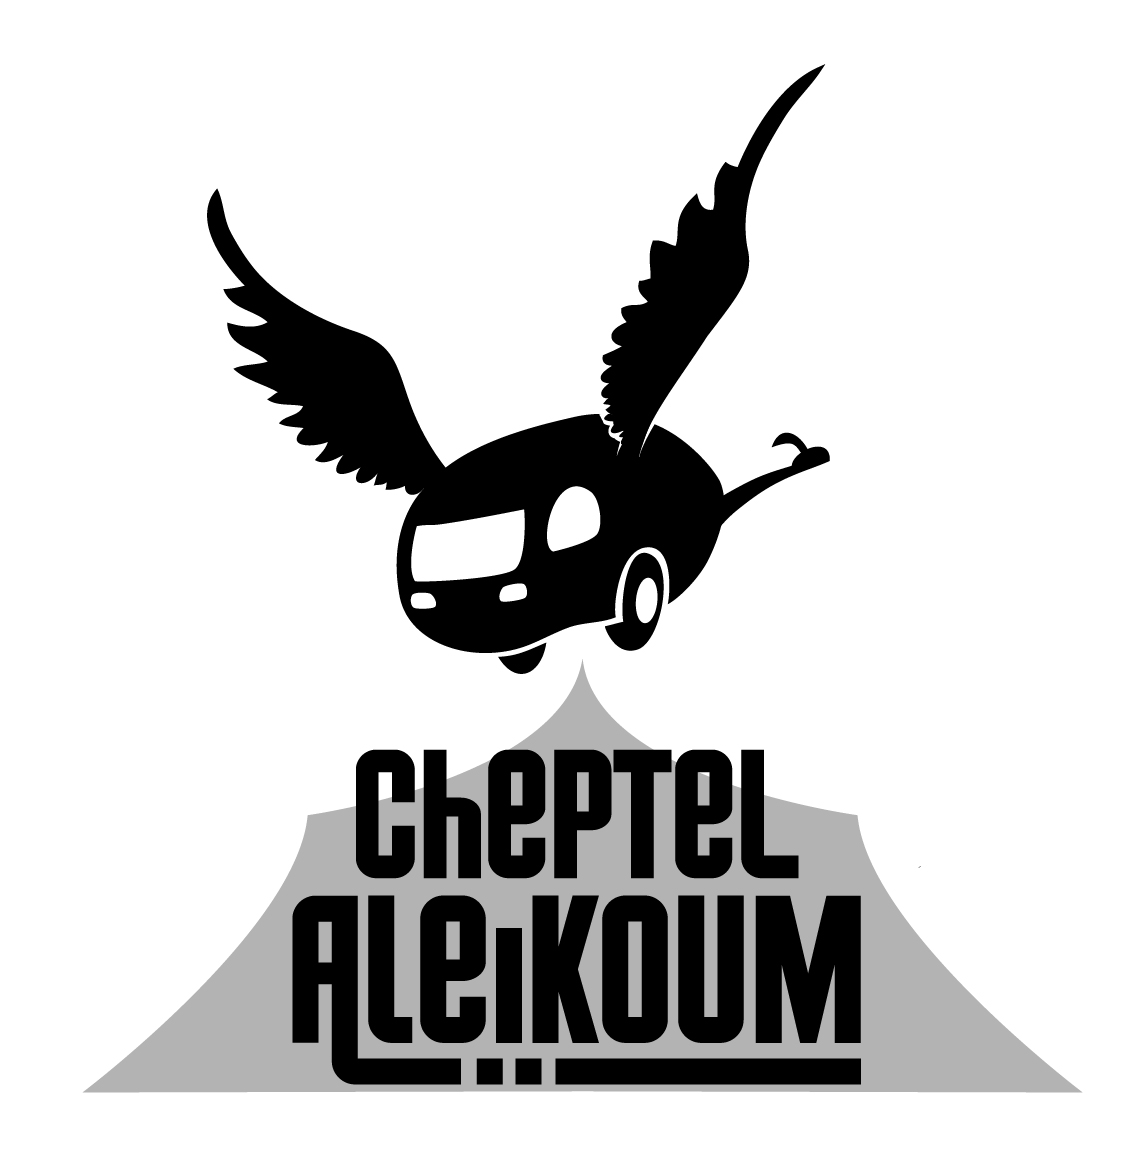 Association - Cheptel Aleïkoum